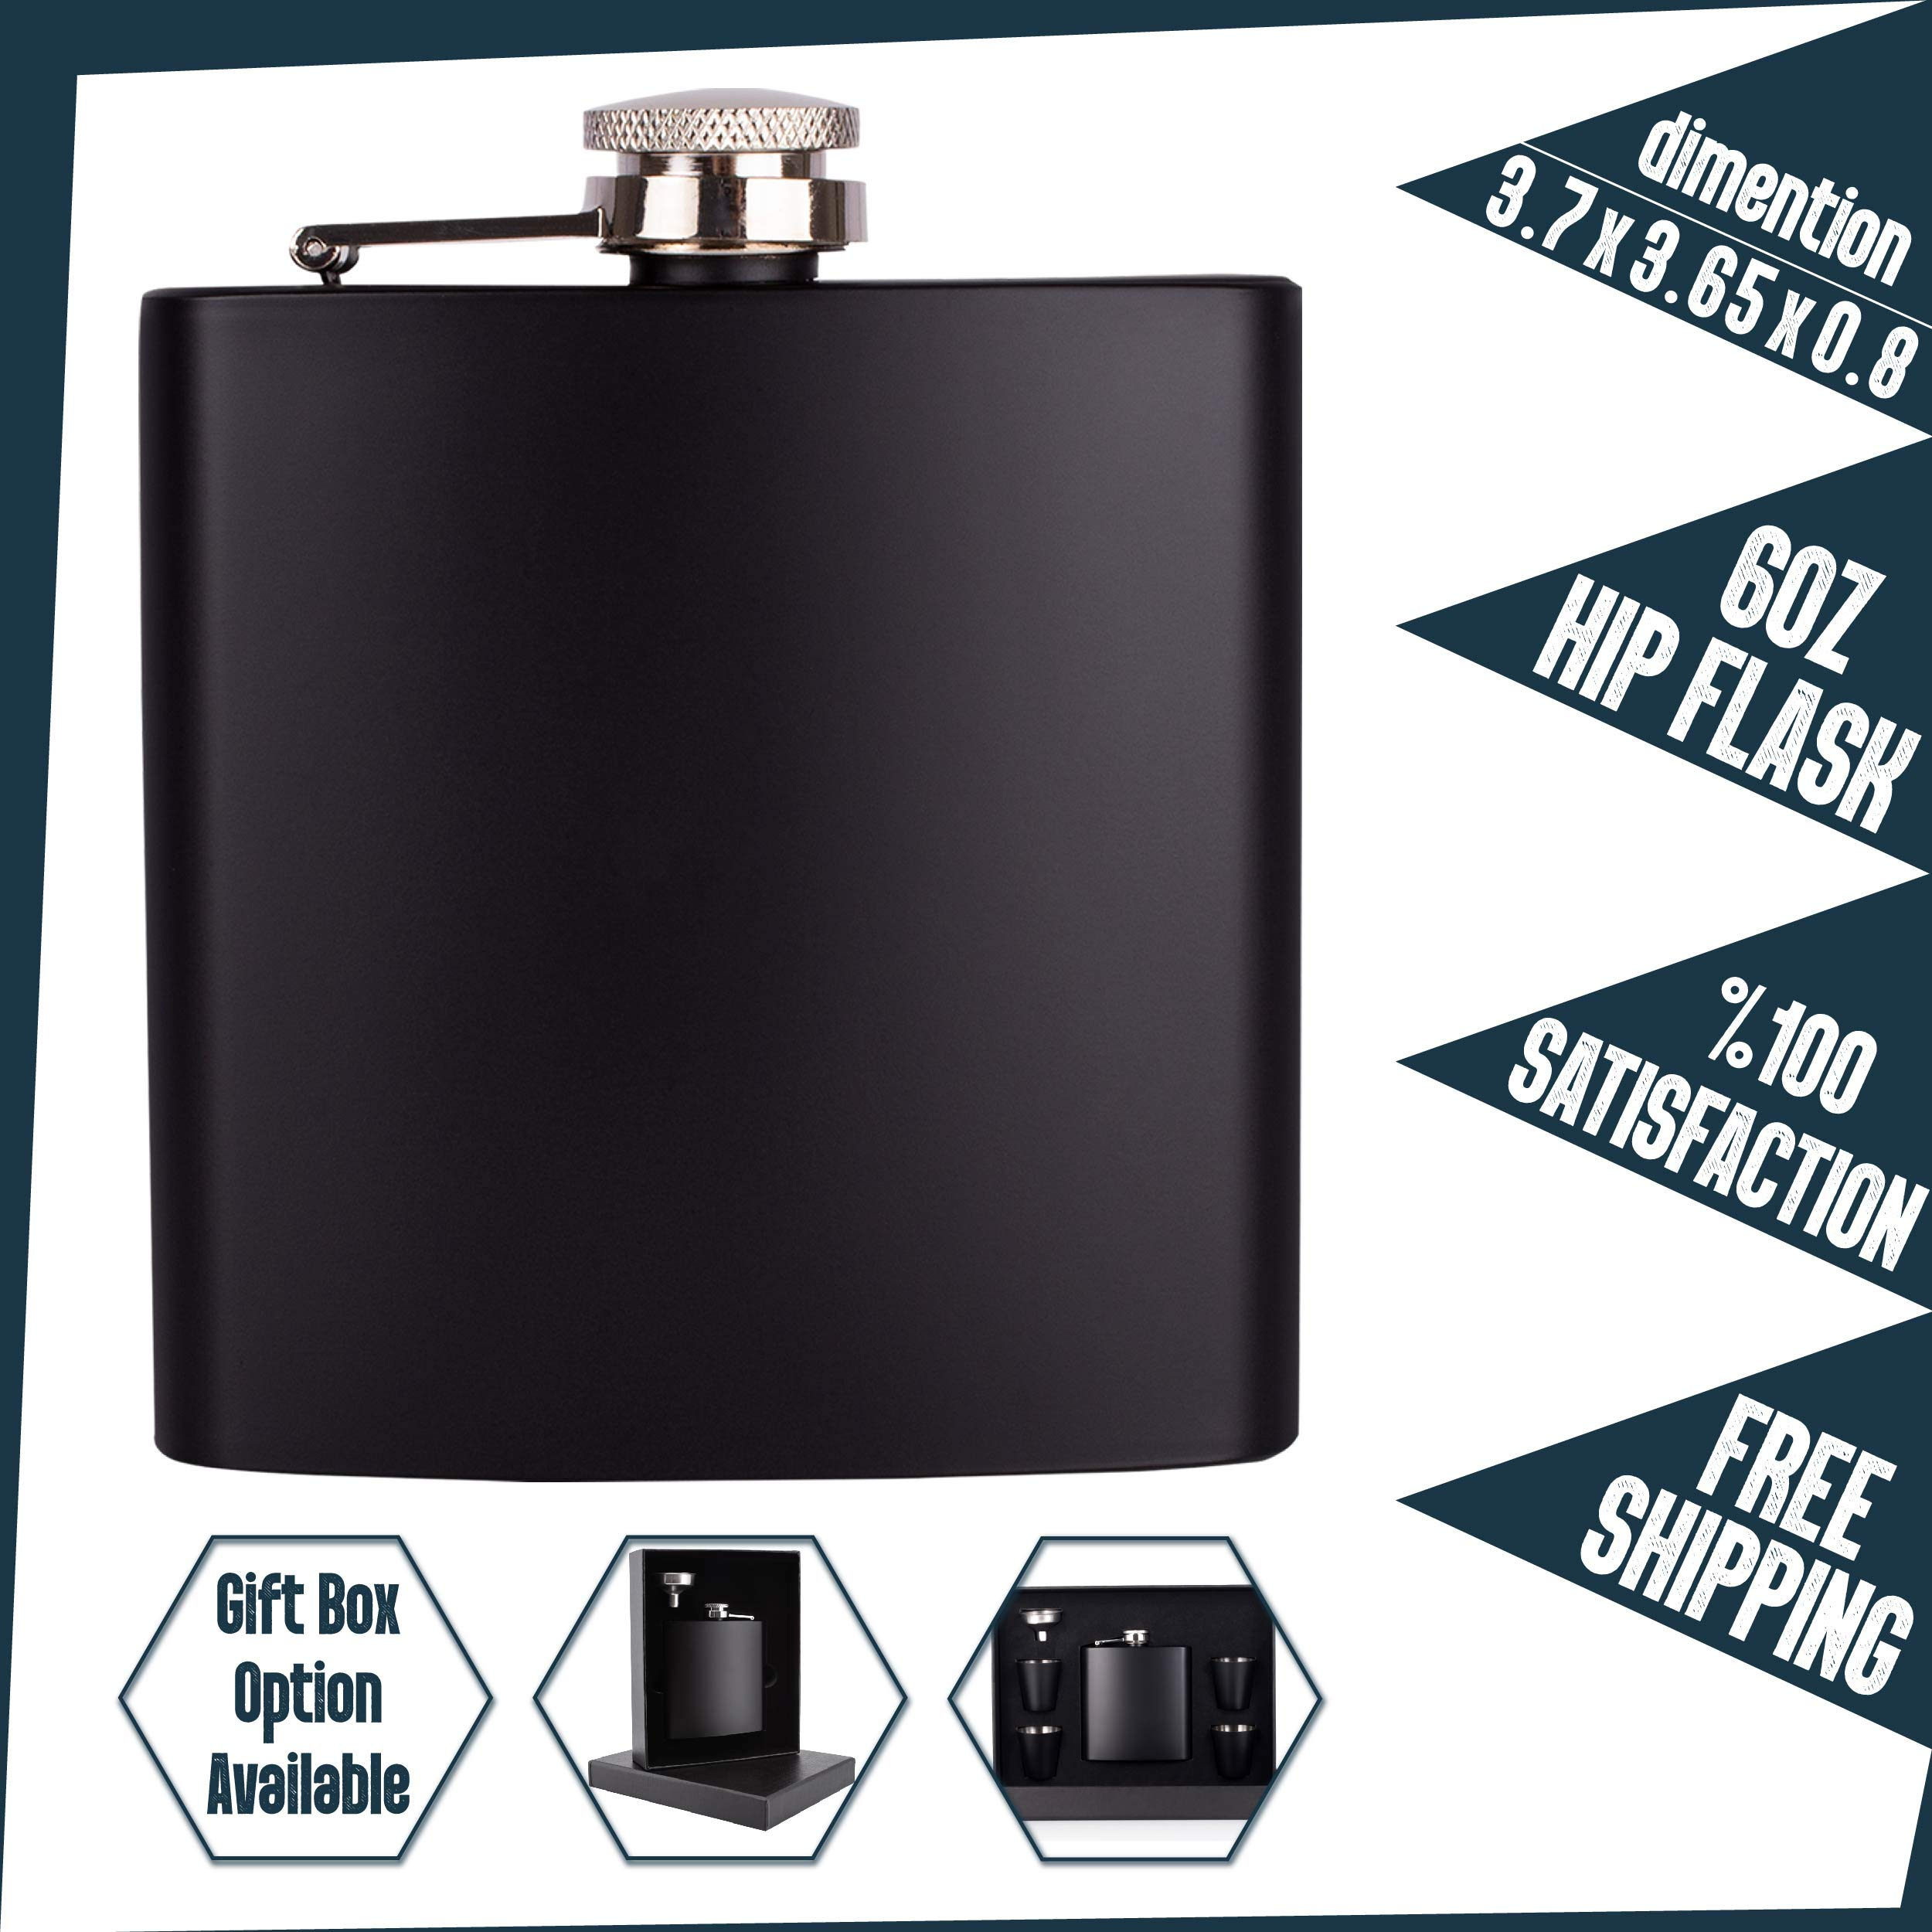 PersonalizedGiftLand Personalized Flask, Set Of 10 - Customized Flask Groomsmen Gifts For Wedding Favors, Personalized Groomsman gift - Stainless Steel Engraves Flasks w Gift Box Options - 6oz, Black by PersonalizedGiftLand (Image #5)